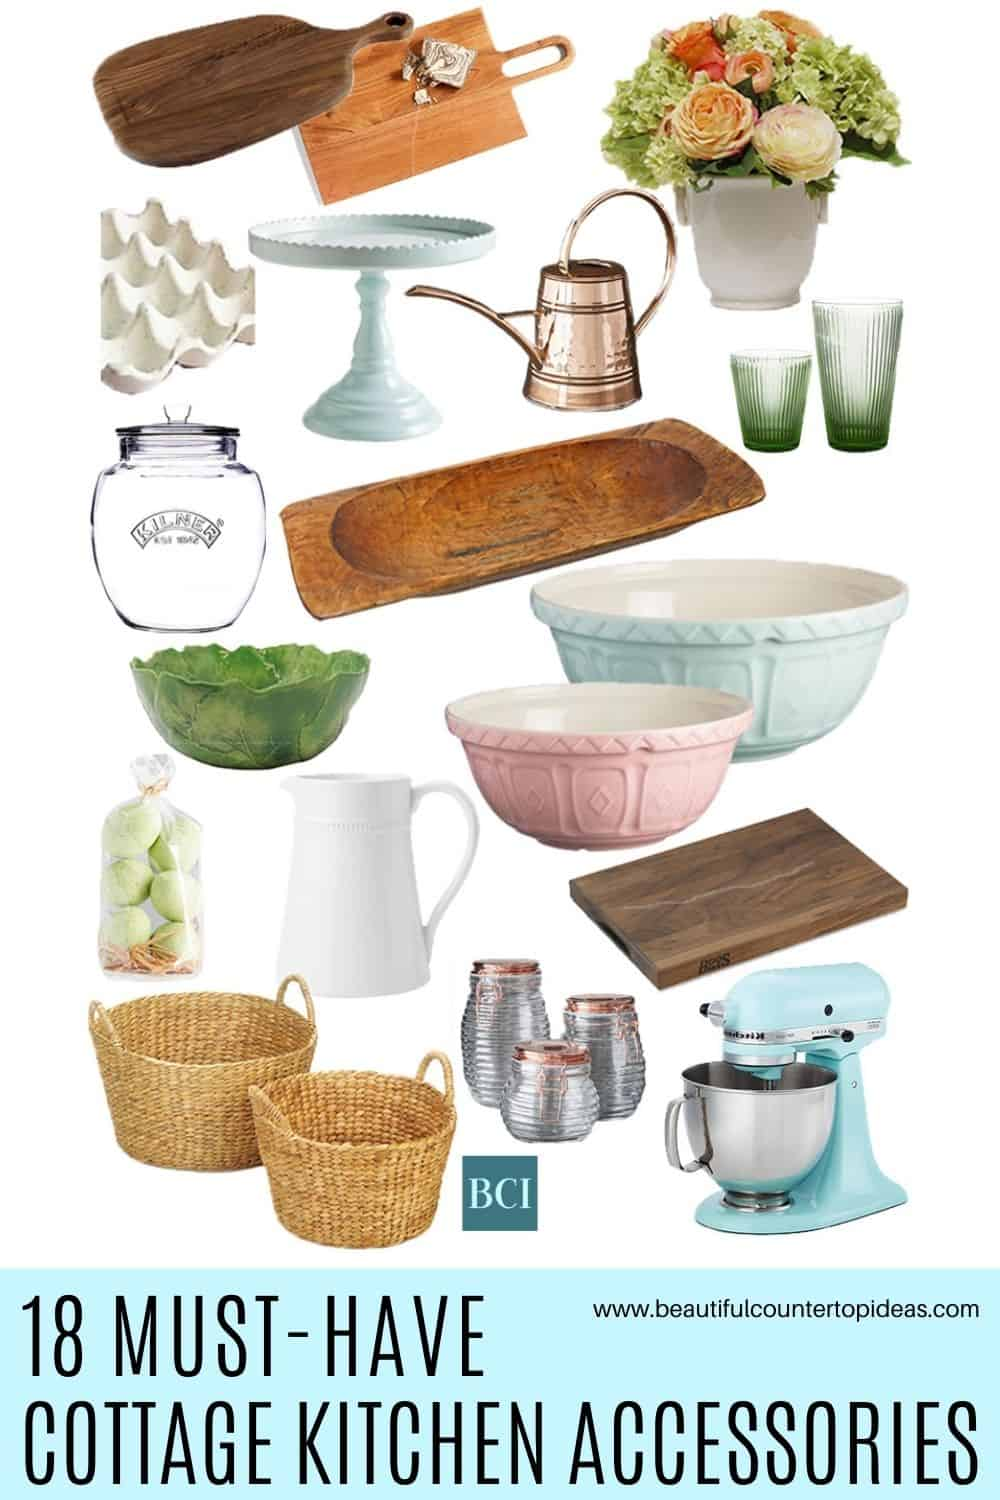 Ready to leave minimalism behind? This collection of cottage kitchen accessories will brighten your countertops with plenty of style and charm.